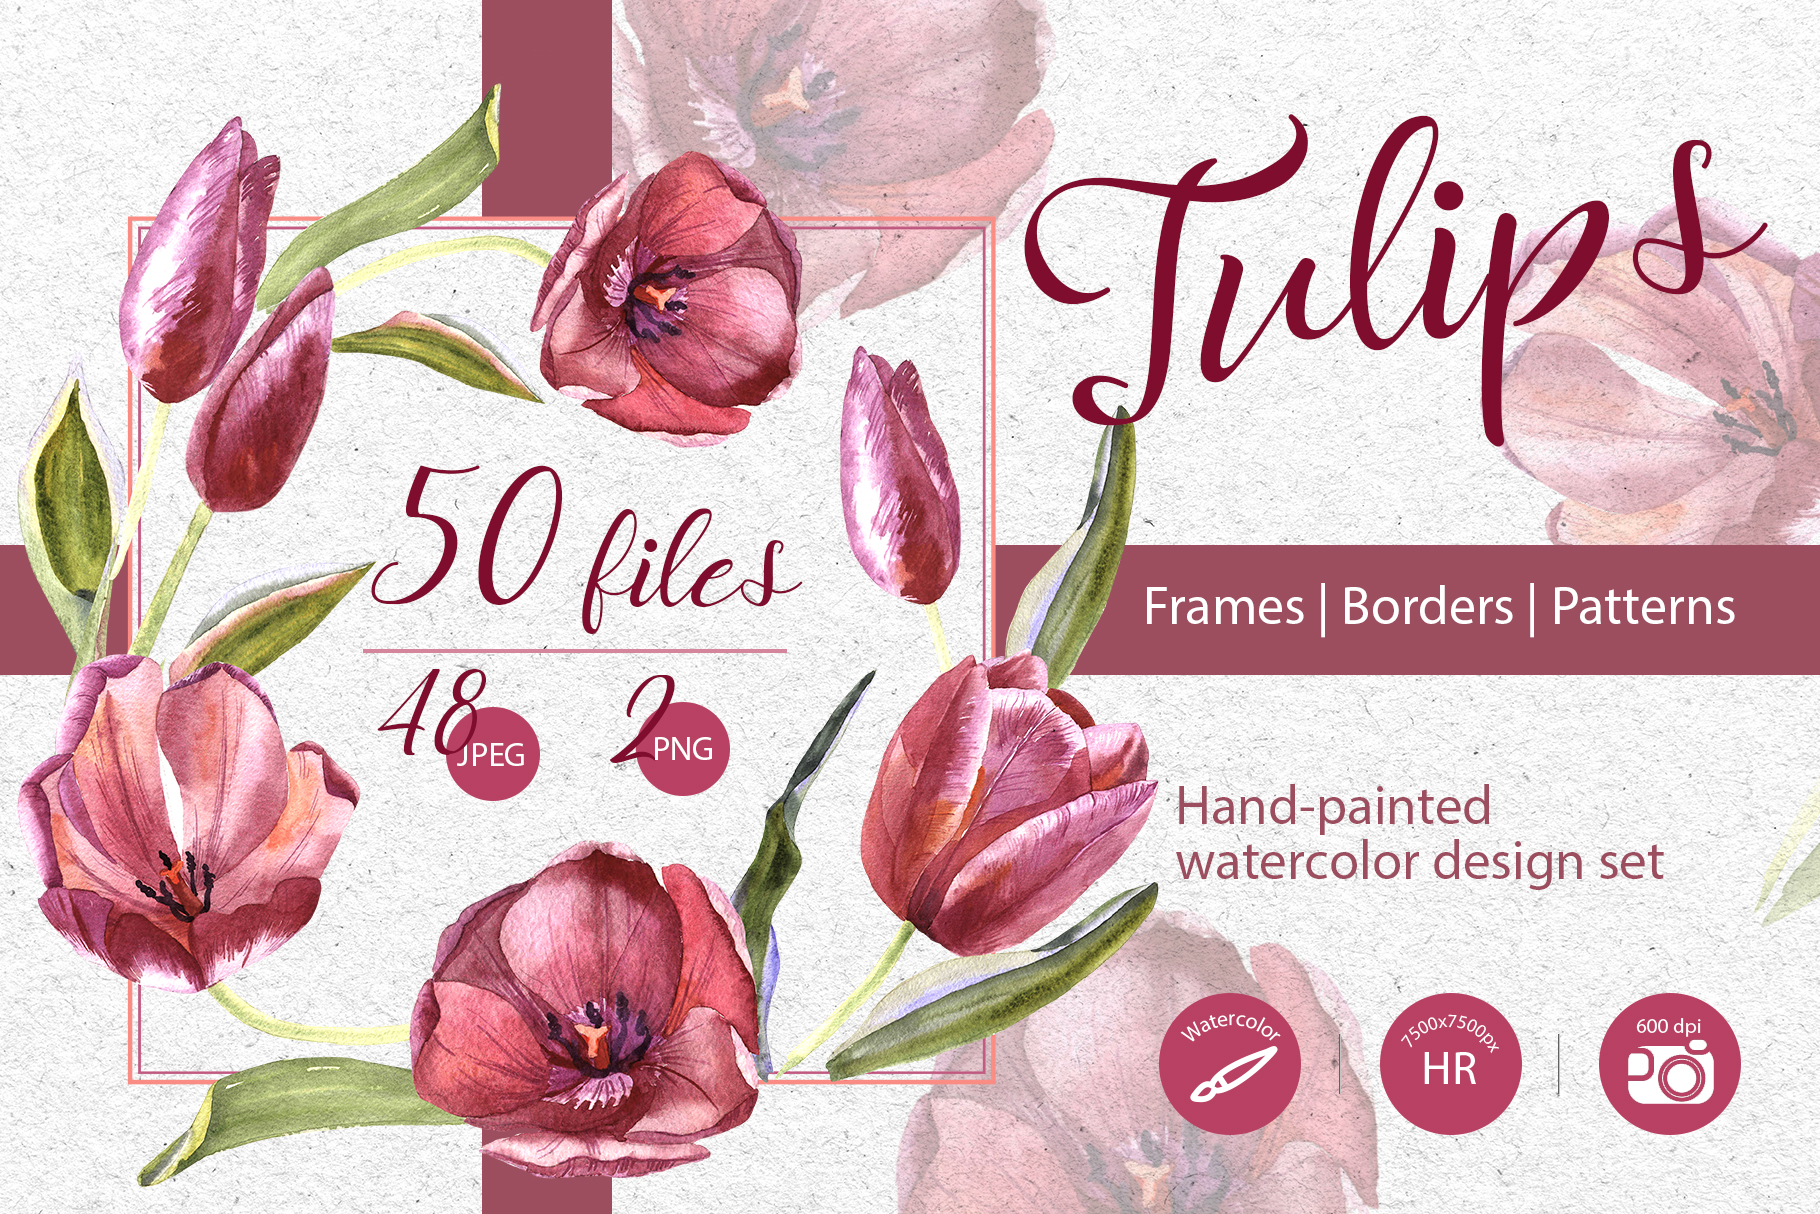 Download Free Wildflower Red Tulips Watercolor Set Graphic By Mystocks for Cricut Explore, Silhouette and other cutting machines.